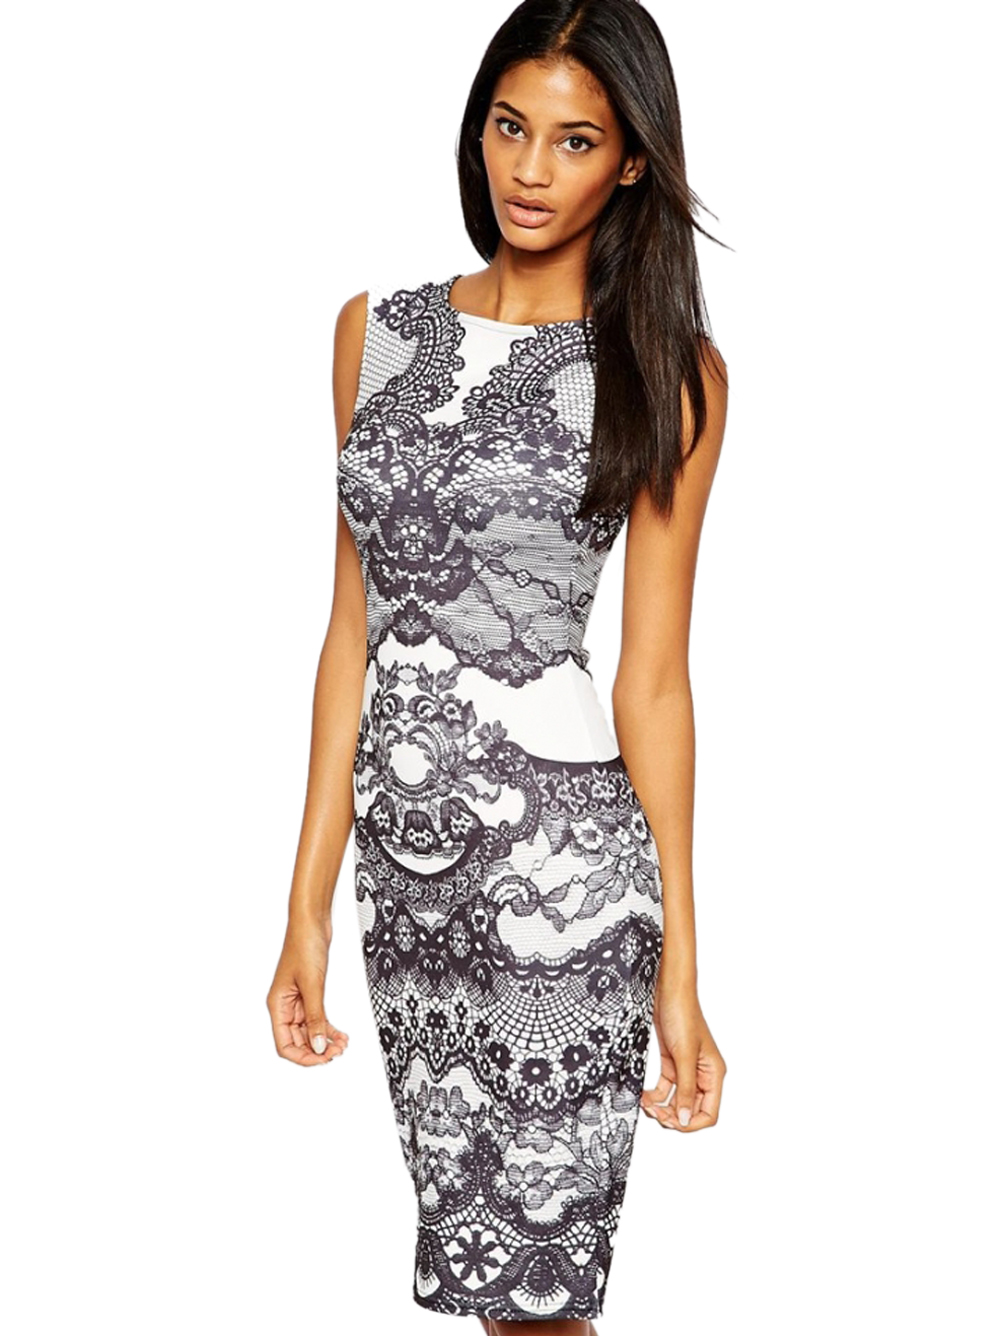 Floral Pattern Women Pencil Dress Sleeveless Elegant Bodycon Dress Lady Smart Casual Work Office Dress 2016 New Arrival(China (Mainland))